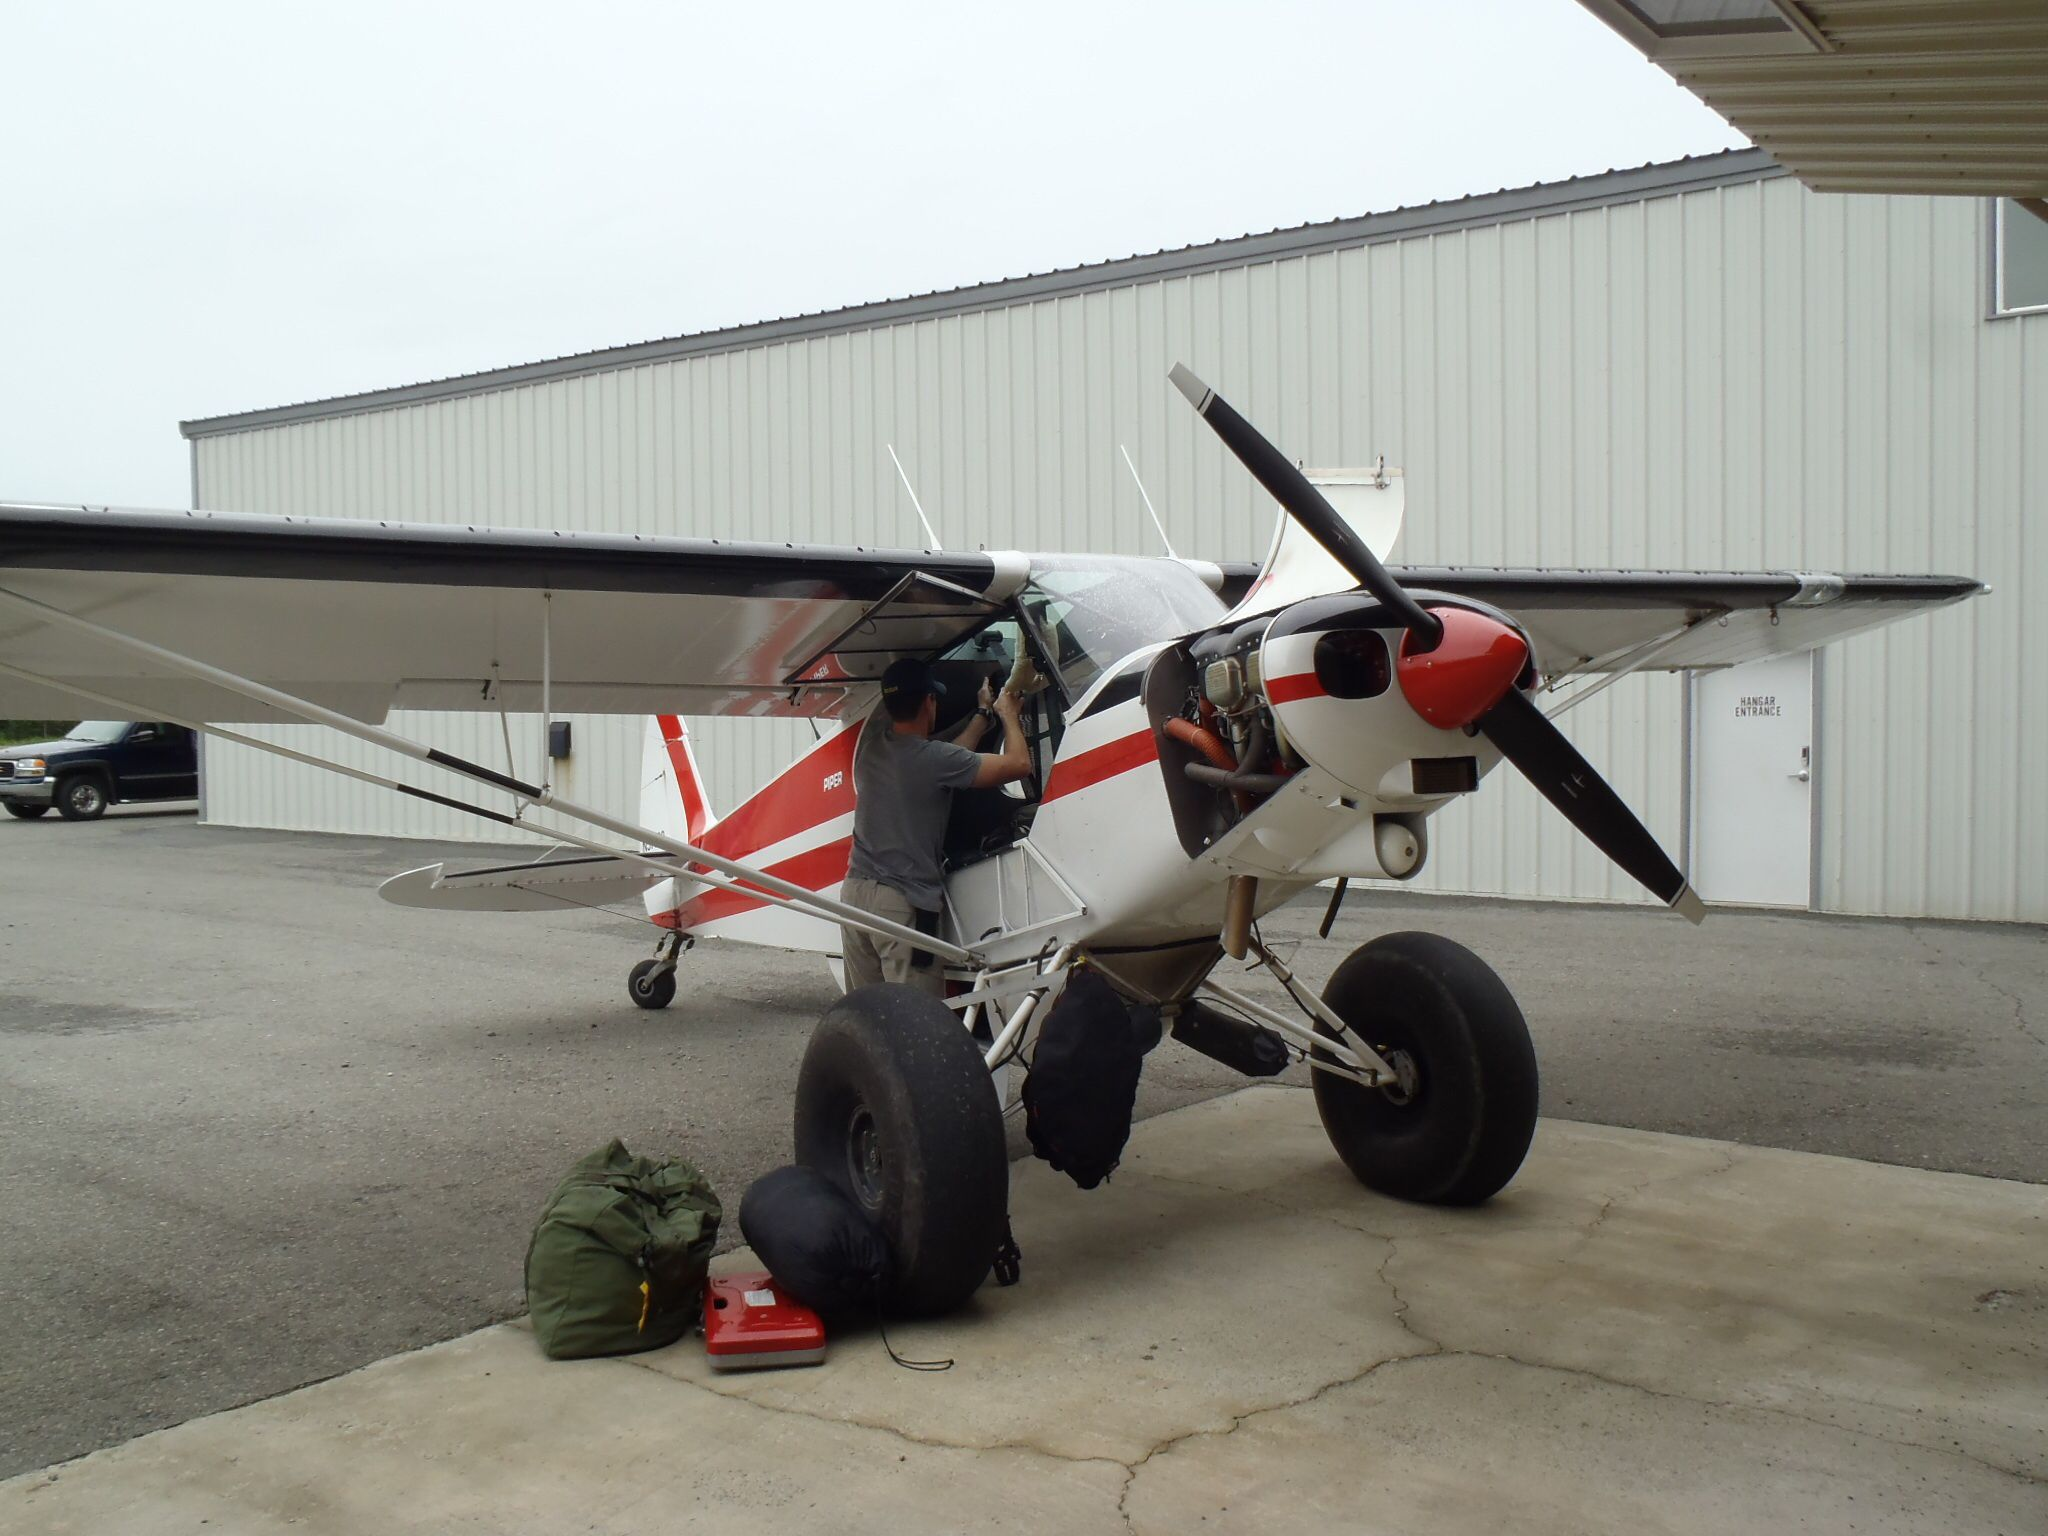 Packing the plane for the trip down the Katmai